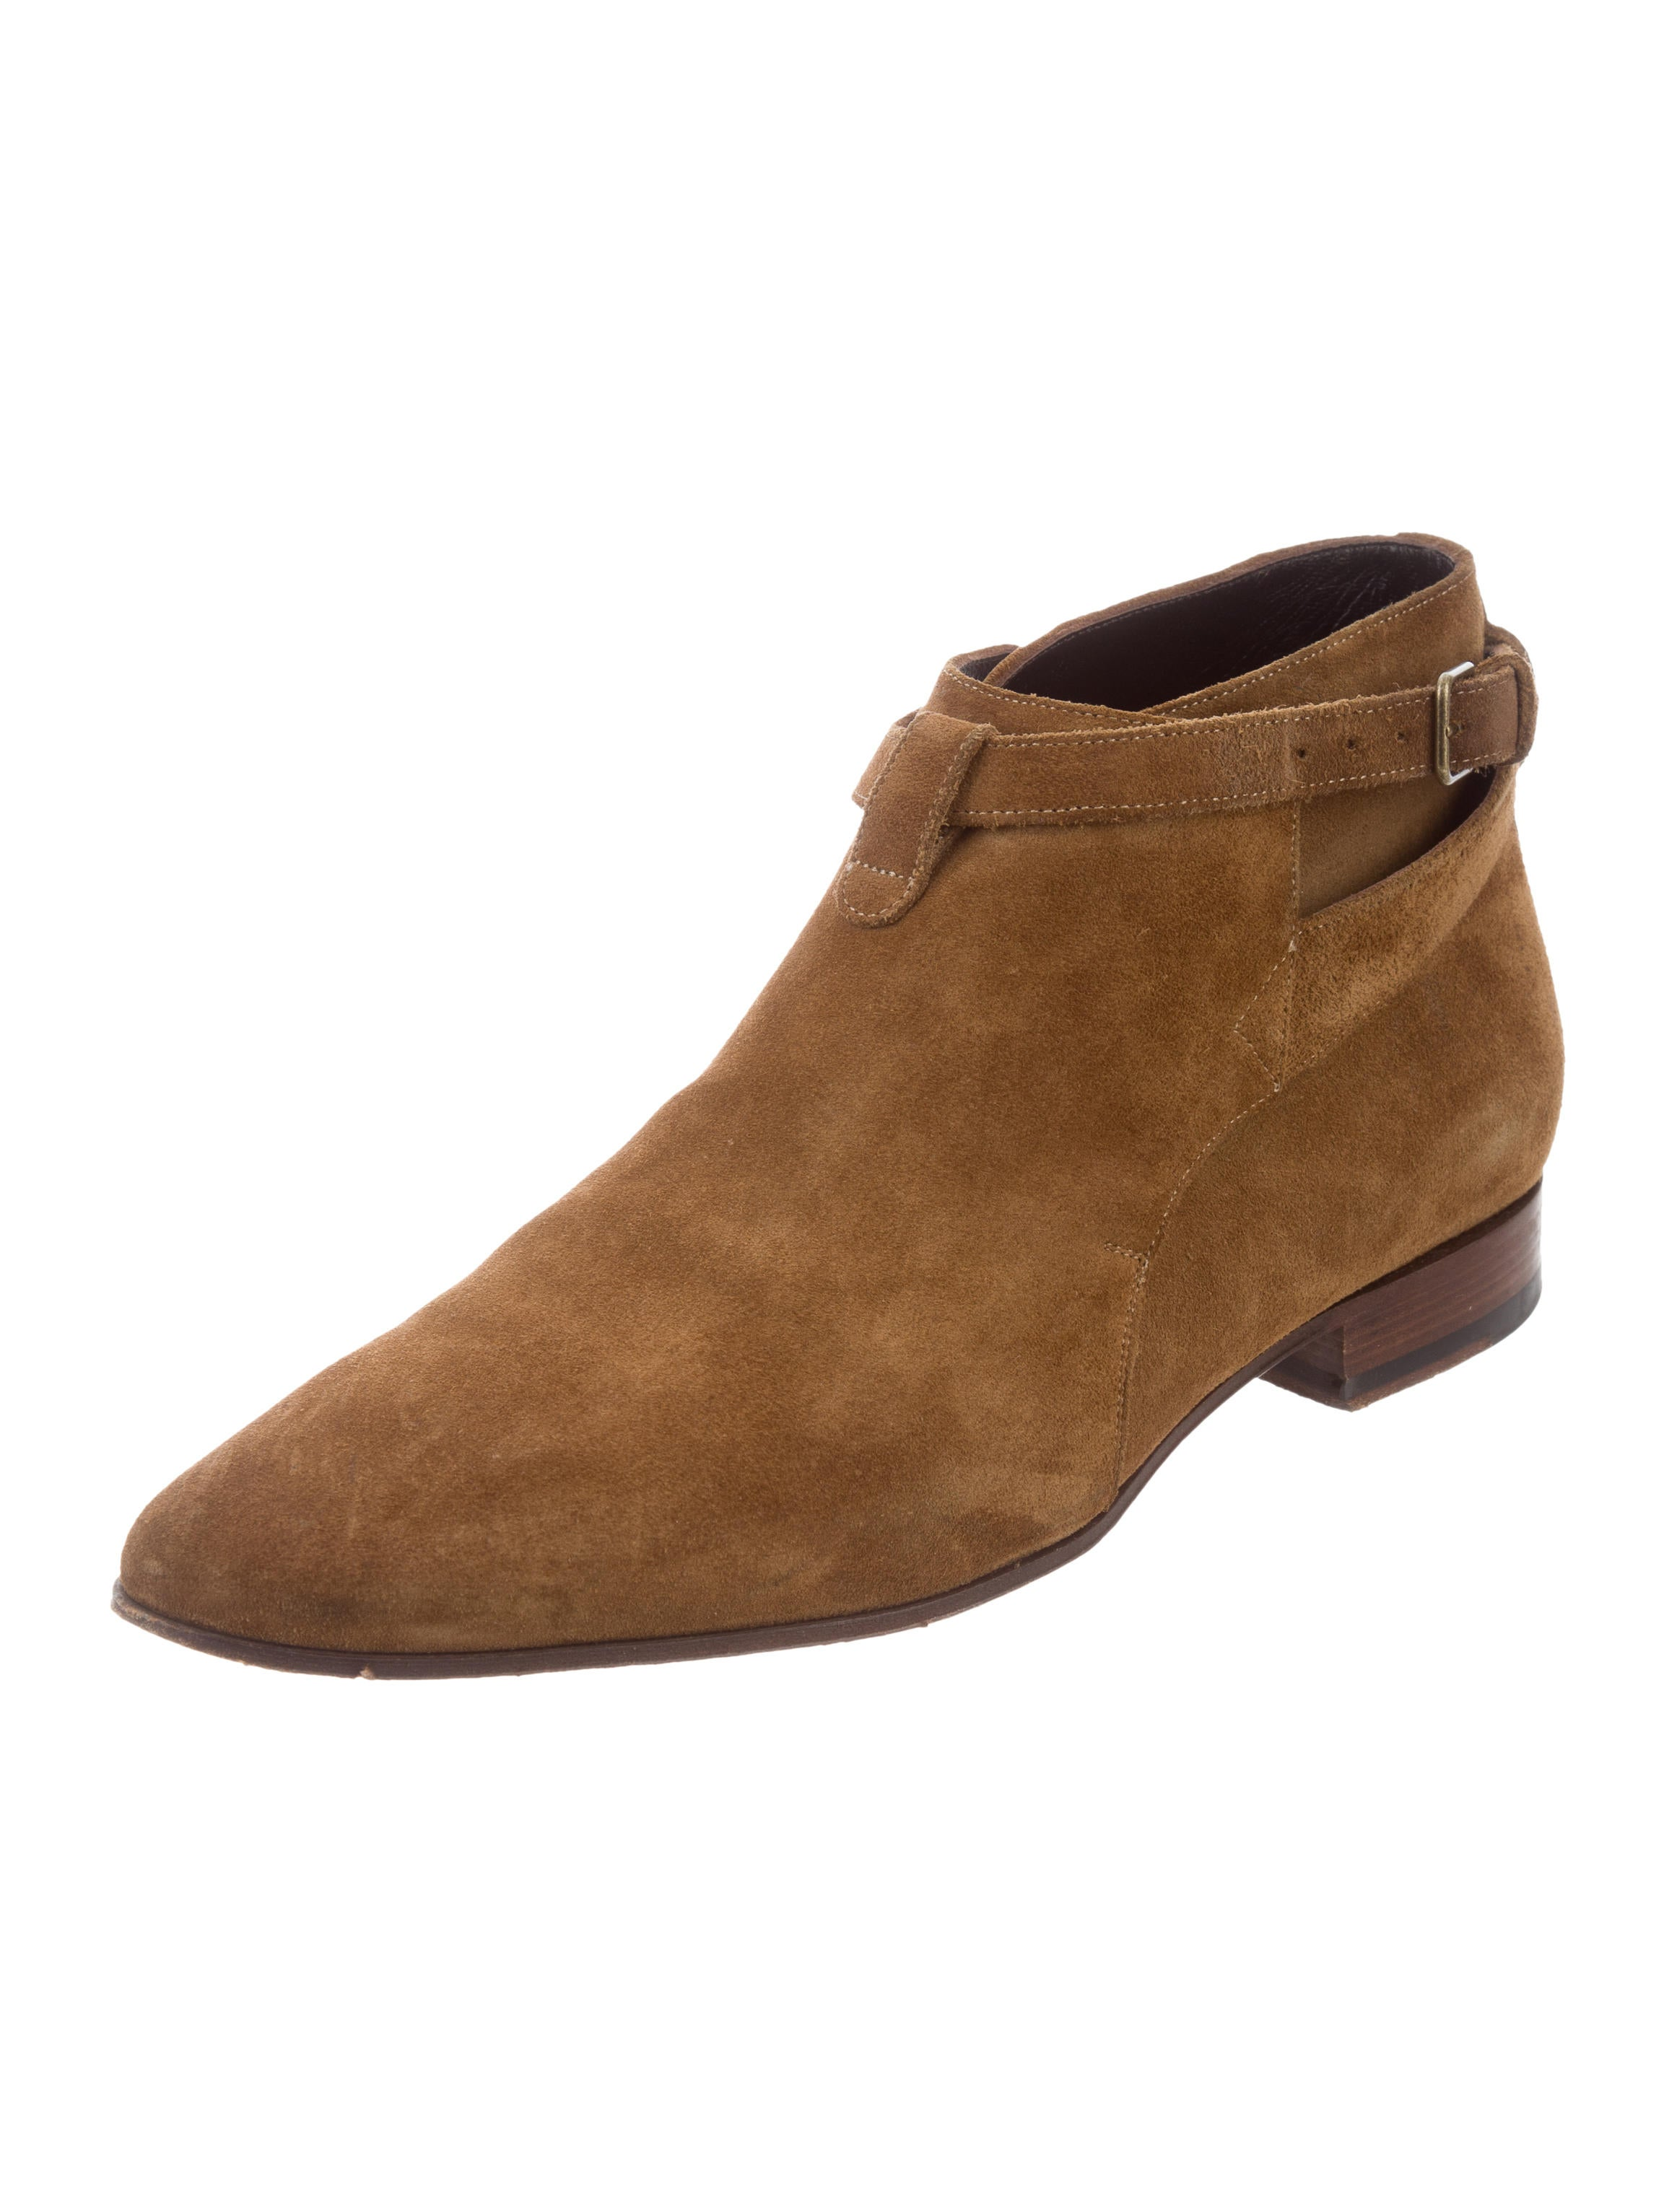 laurent jodhpur suede buckle ankle boots shoes snt37906 the realreal